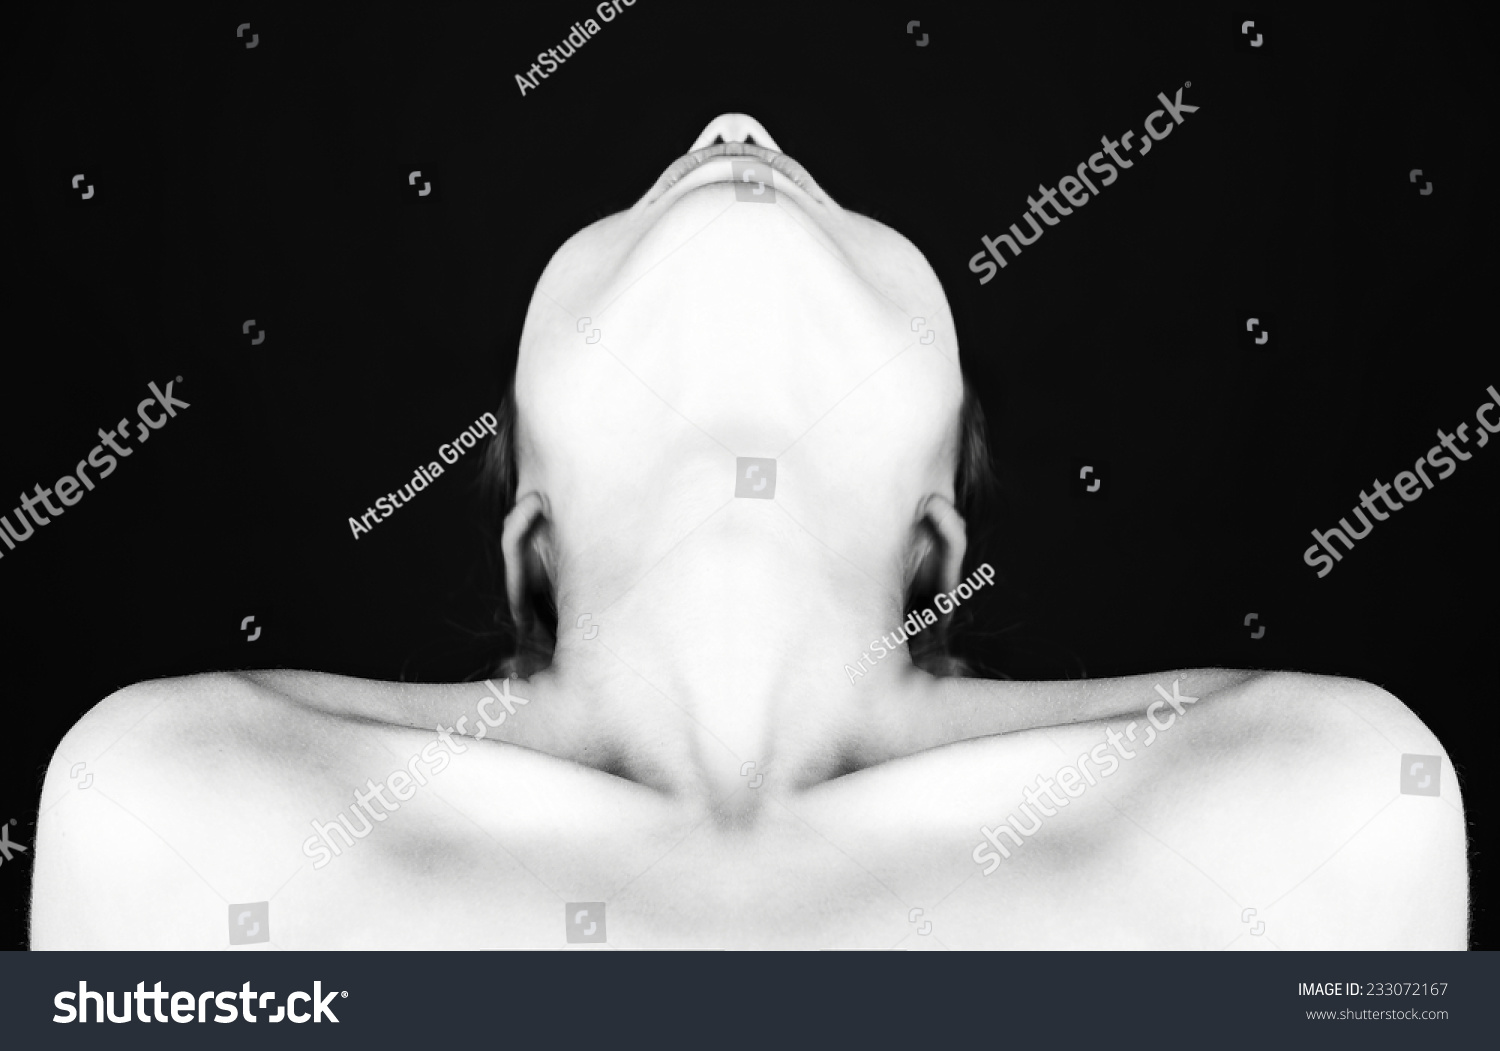 Nude sex photography